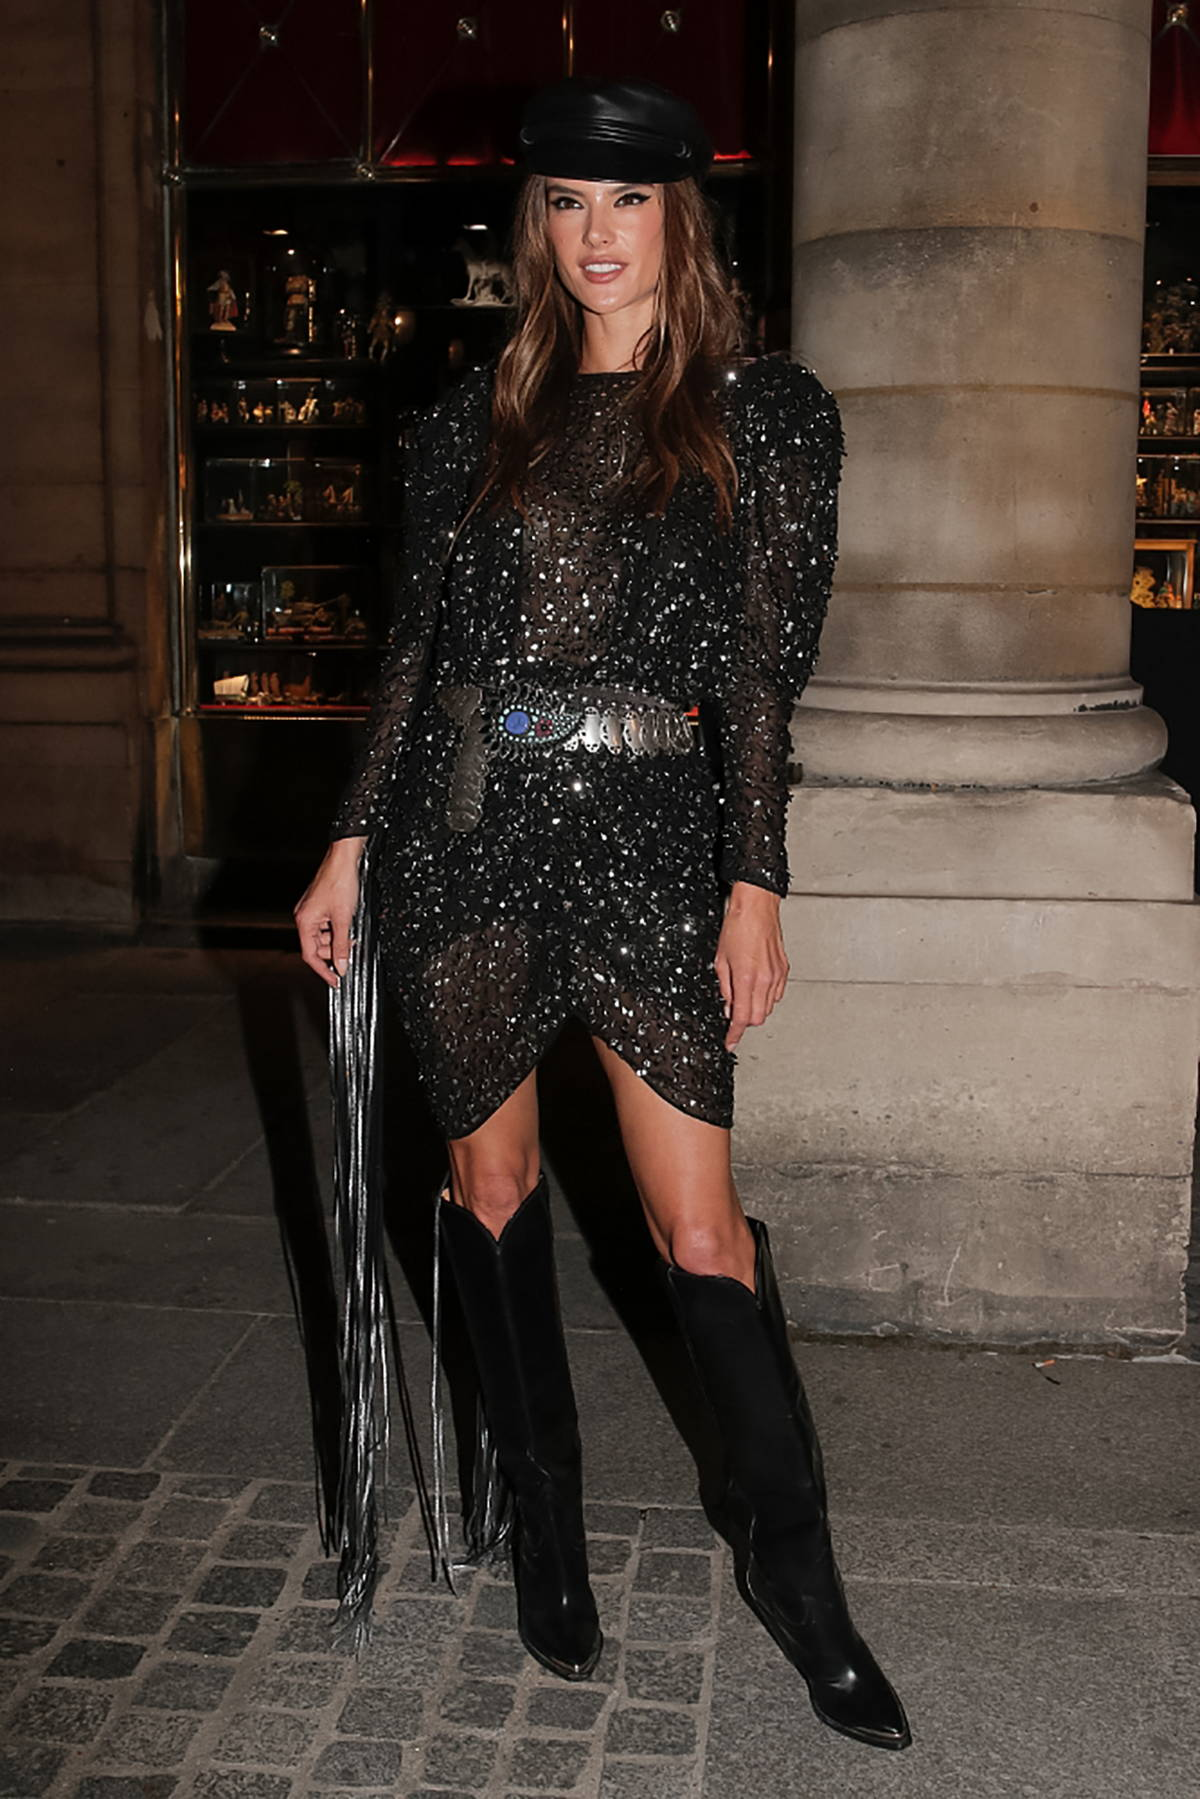 Alessandra Ambrosio attends the Isabel Marant SS22 show during the Paris Fashion Week in Paris, France